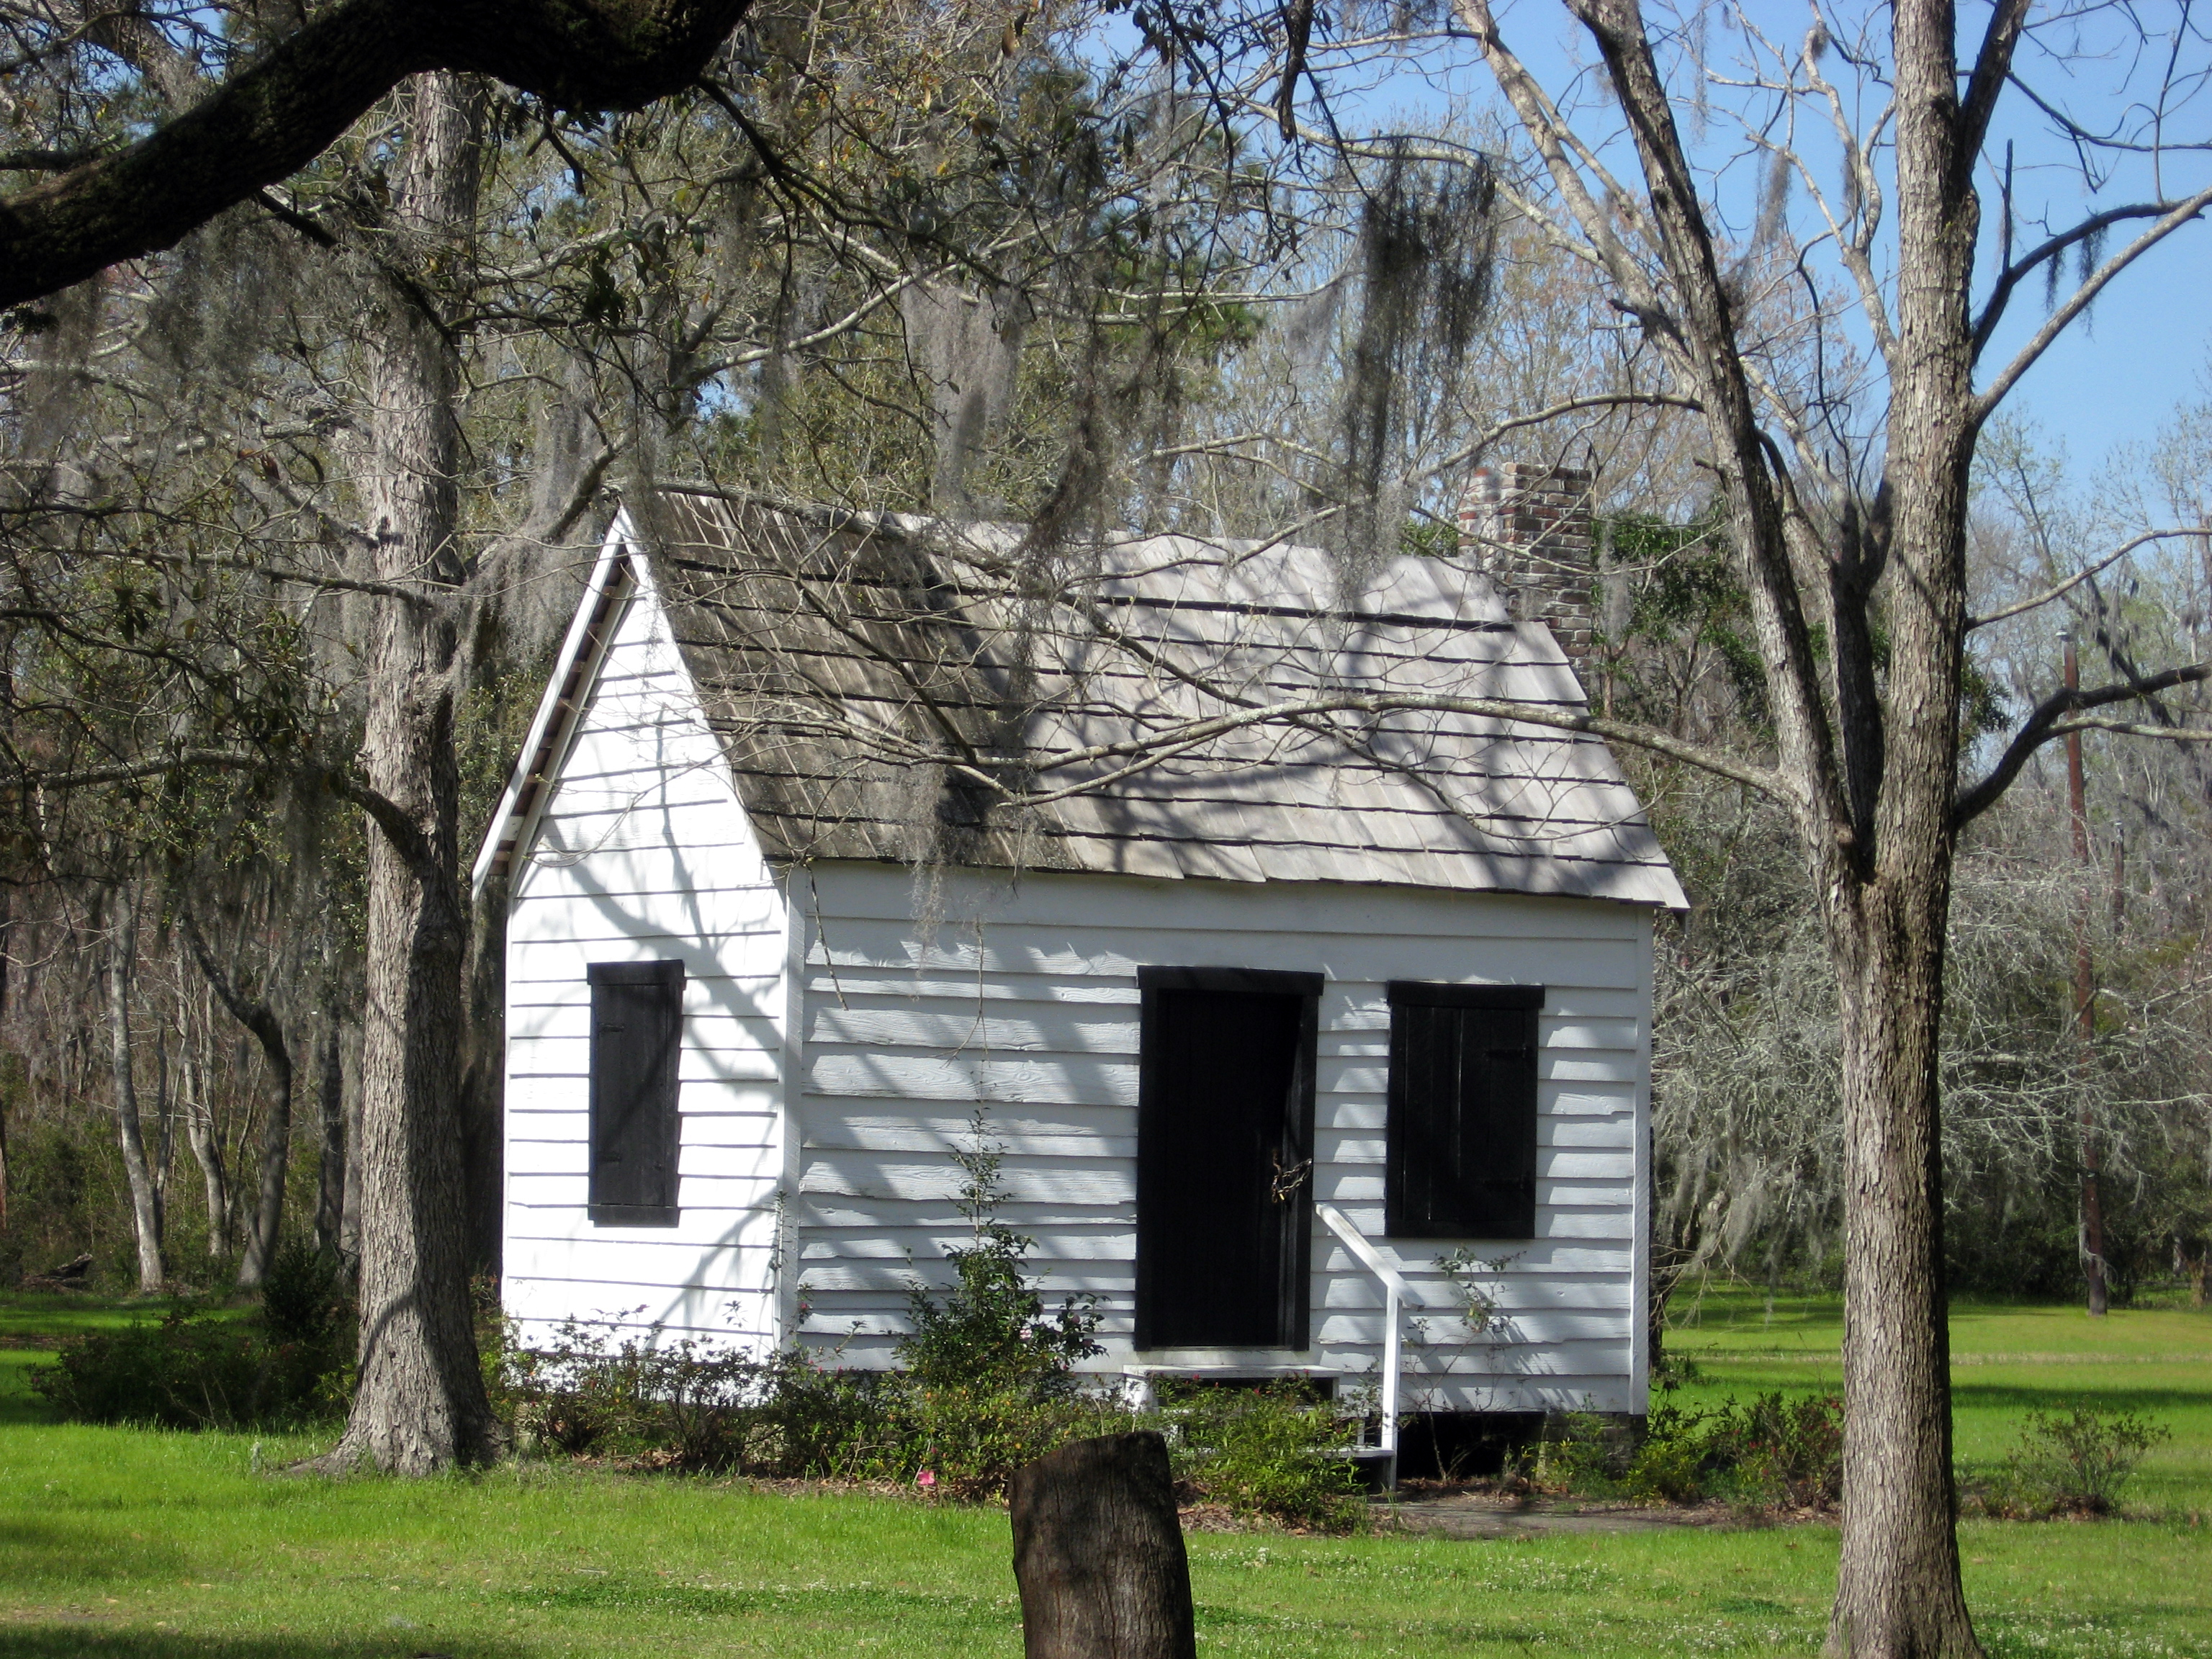 The Magnolia Plantation Slave Quarters.